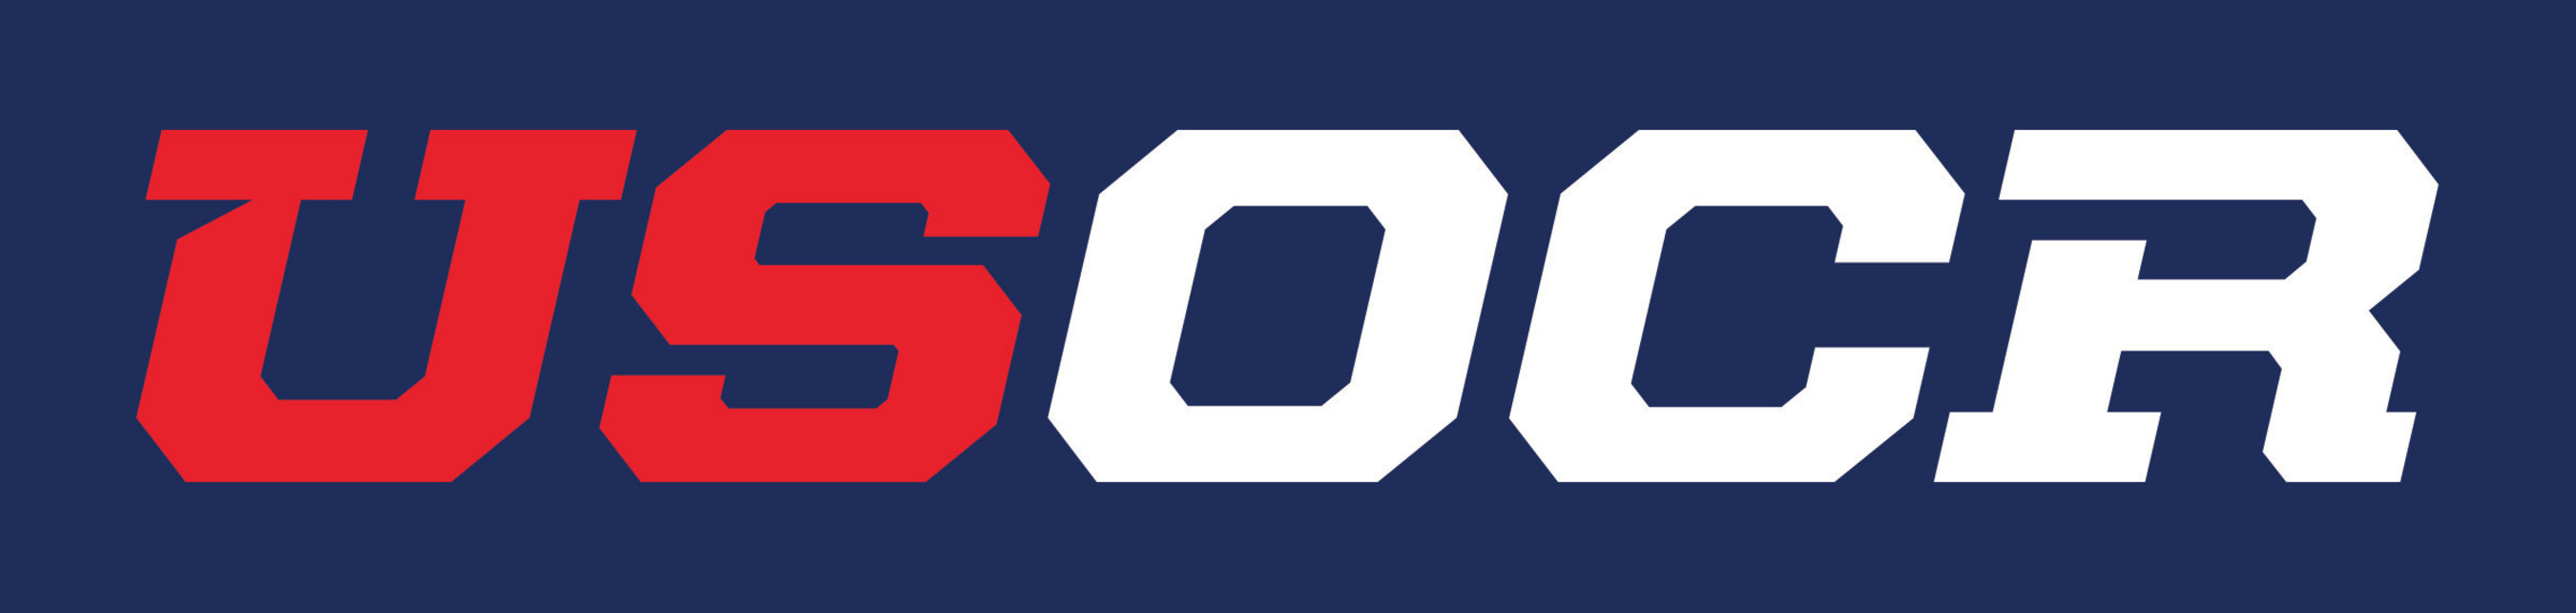 United States Obstacle Course Racing (USOCR), the national association dedicated to the sustained growth of obstacle course racing, is heading into its third season with energy, clarity and momentum.